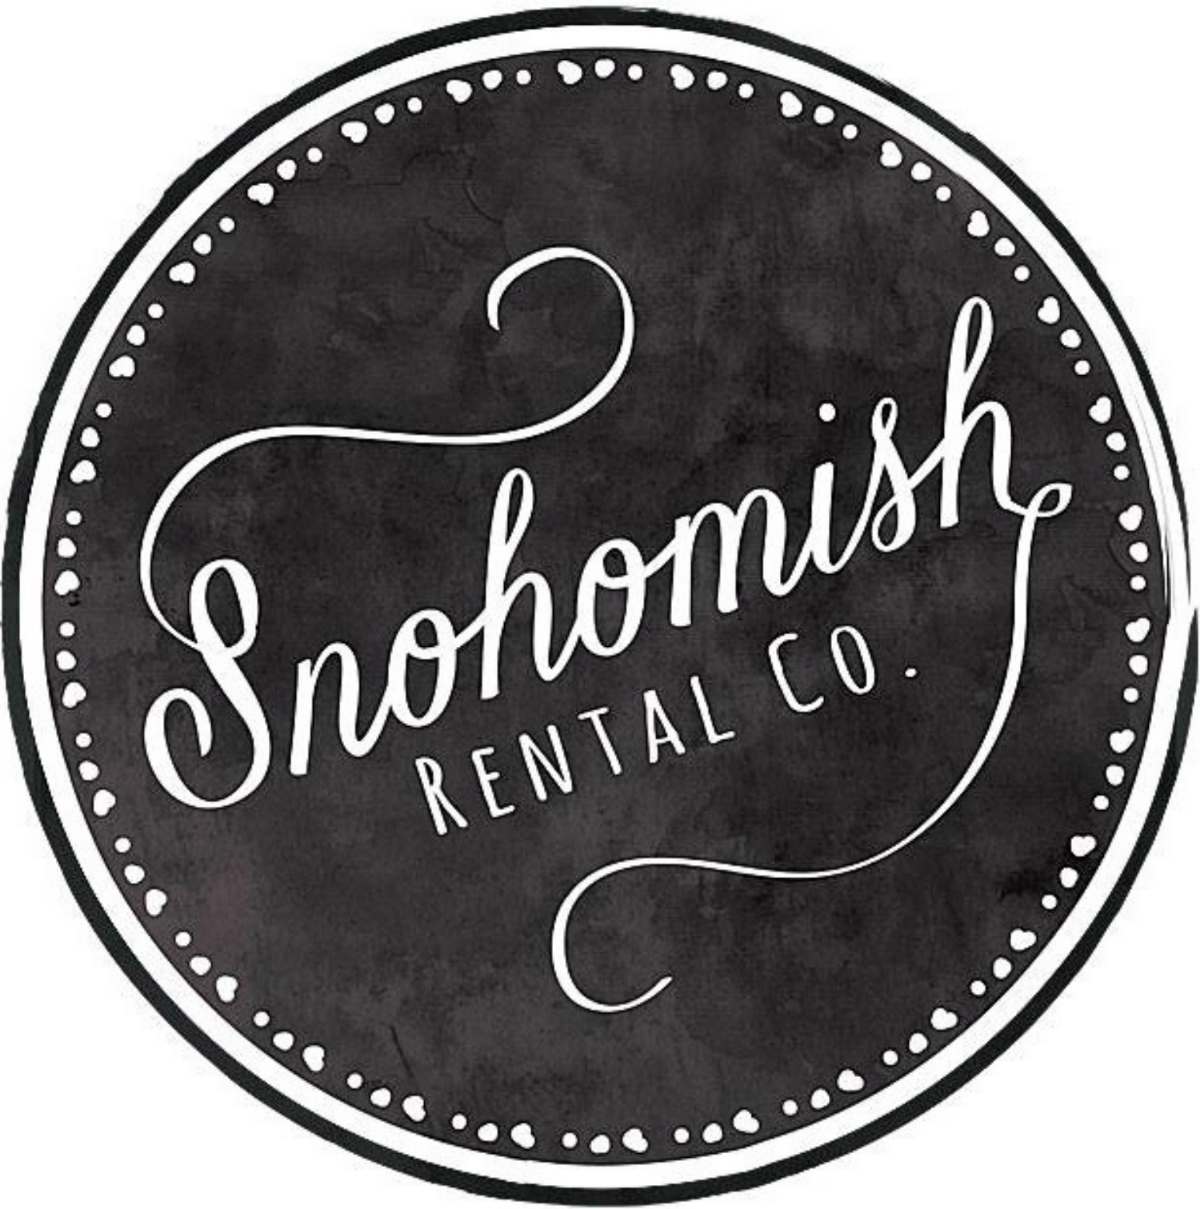 Snohomish Rental Co.